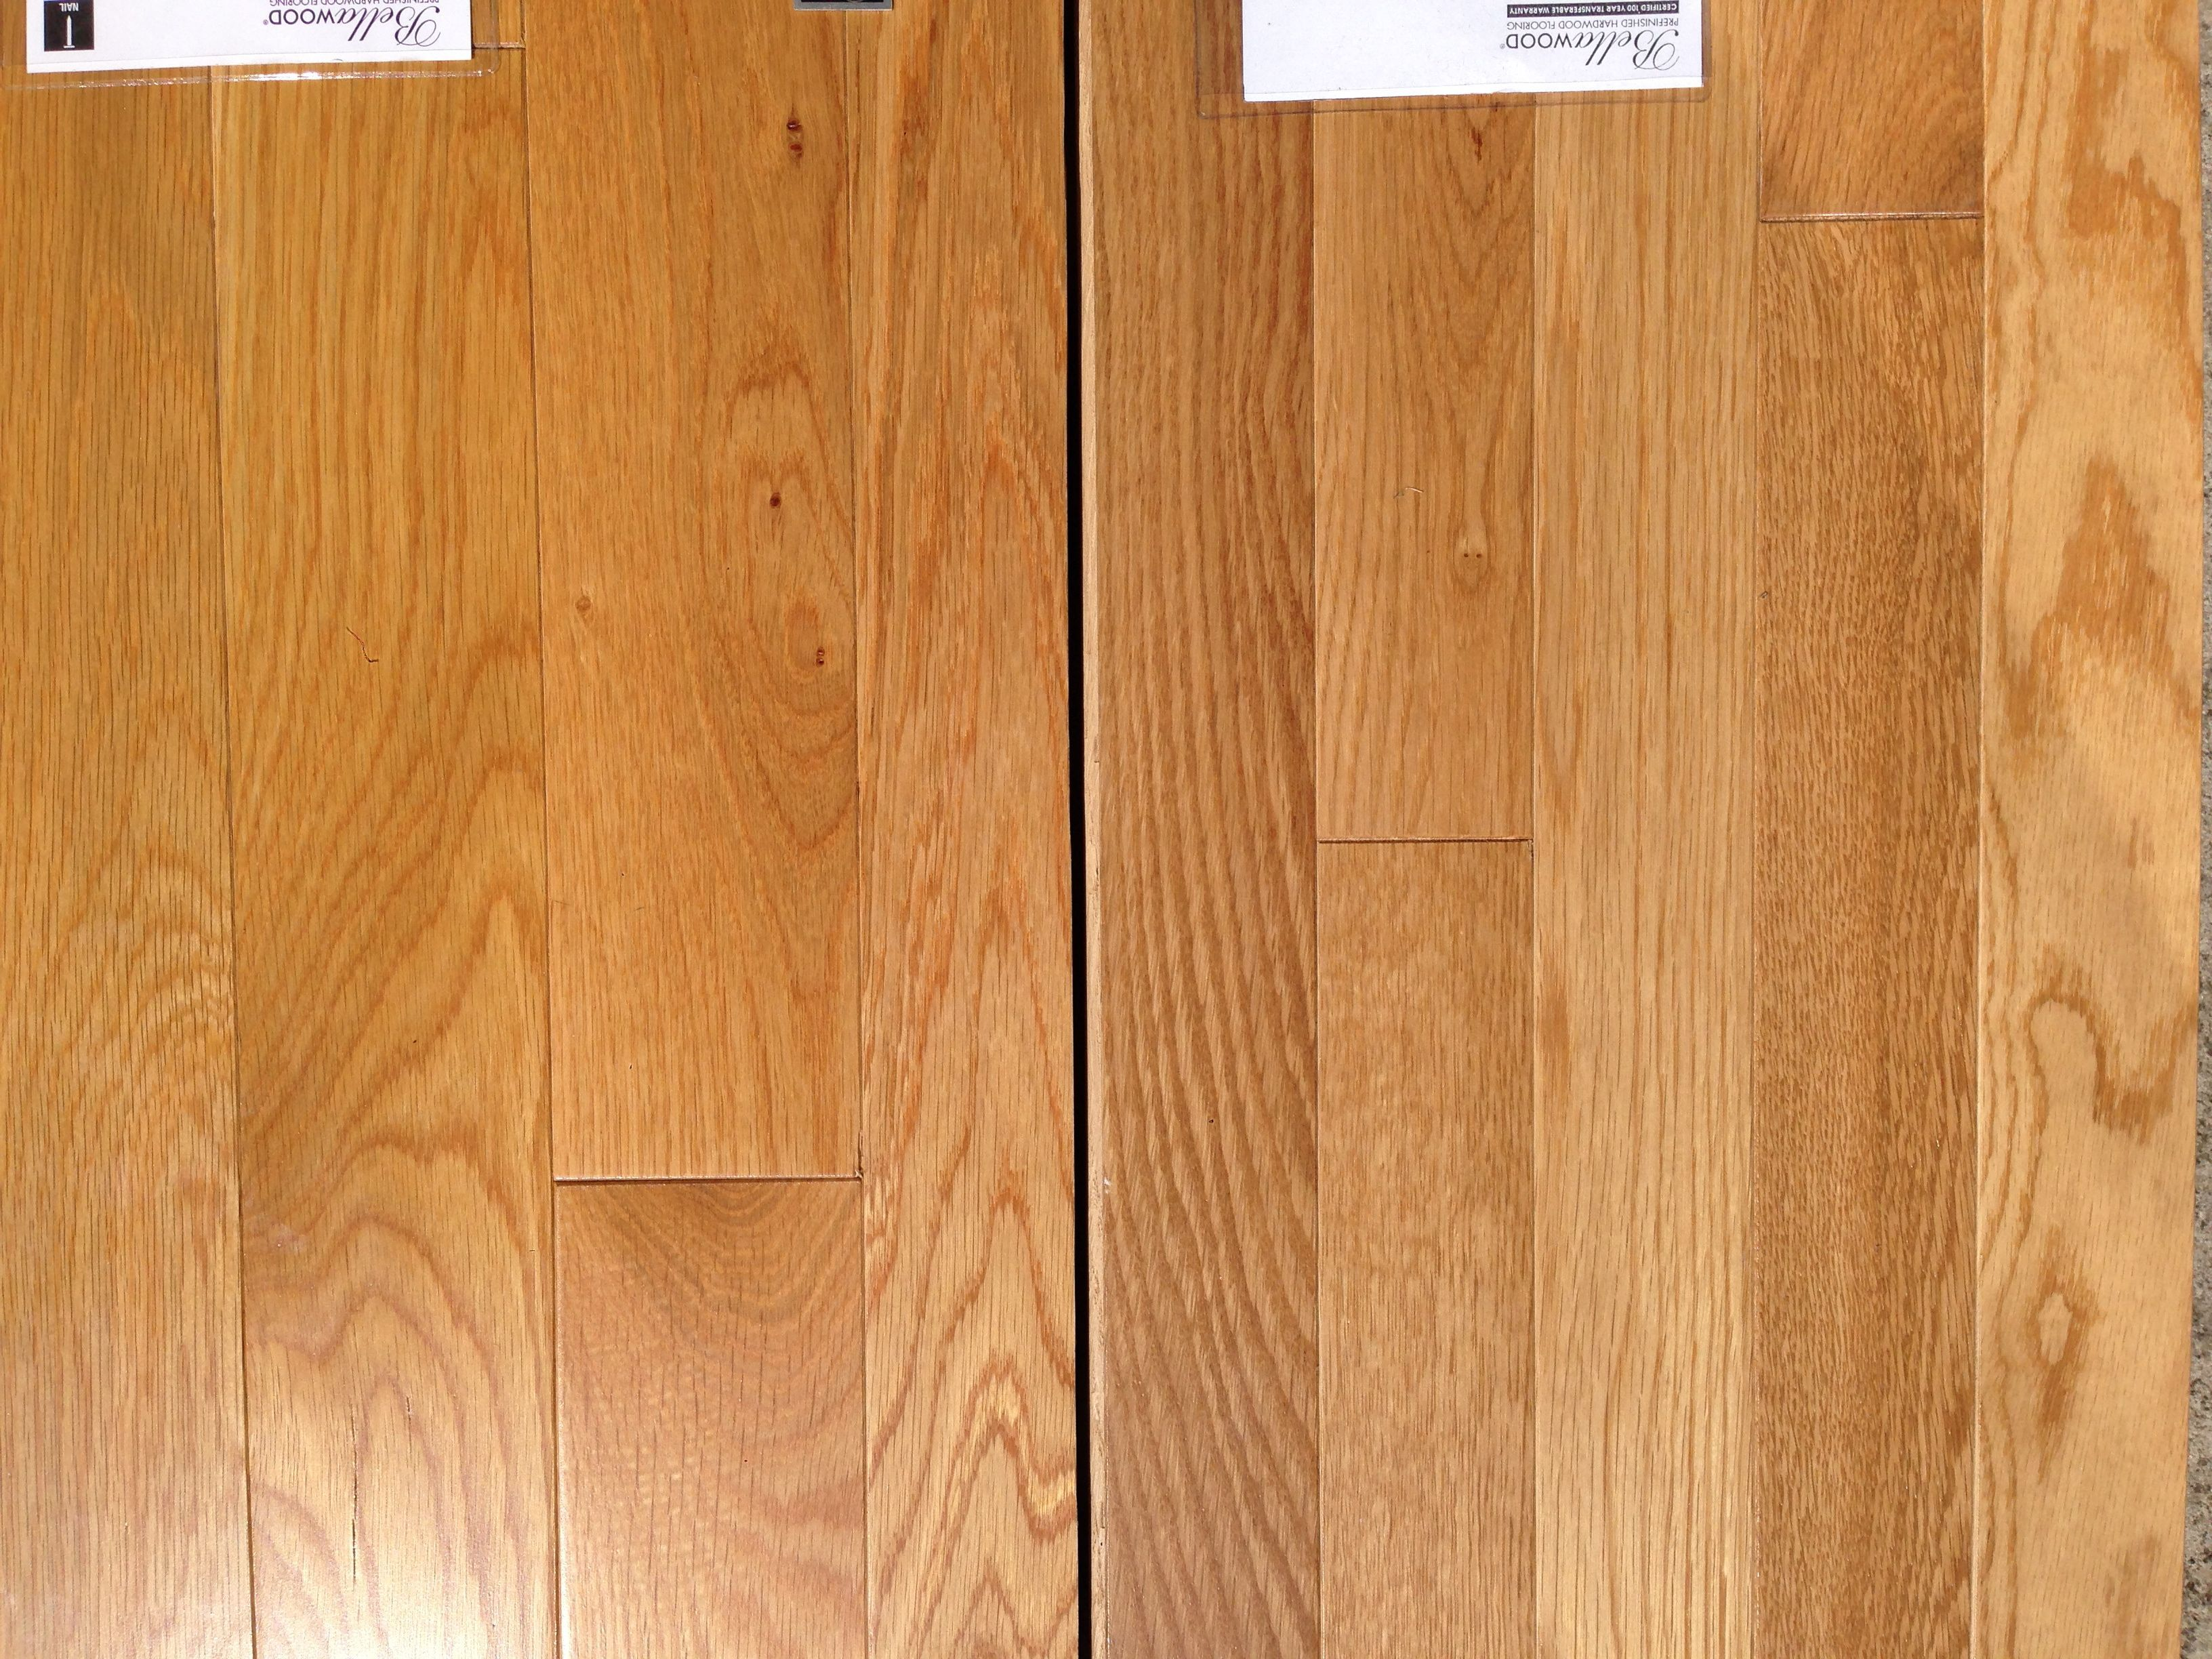 White Oak 2 1 4 Vs 3 1 4 Light Colored Wood Hardwood Floors Flooring